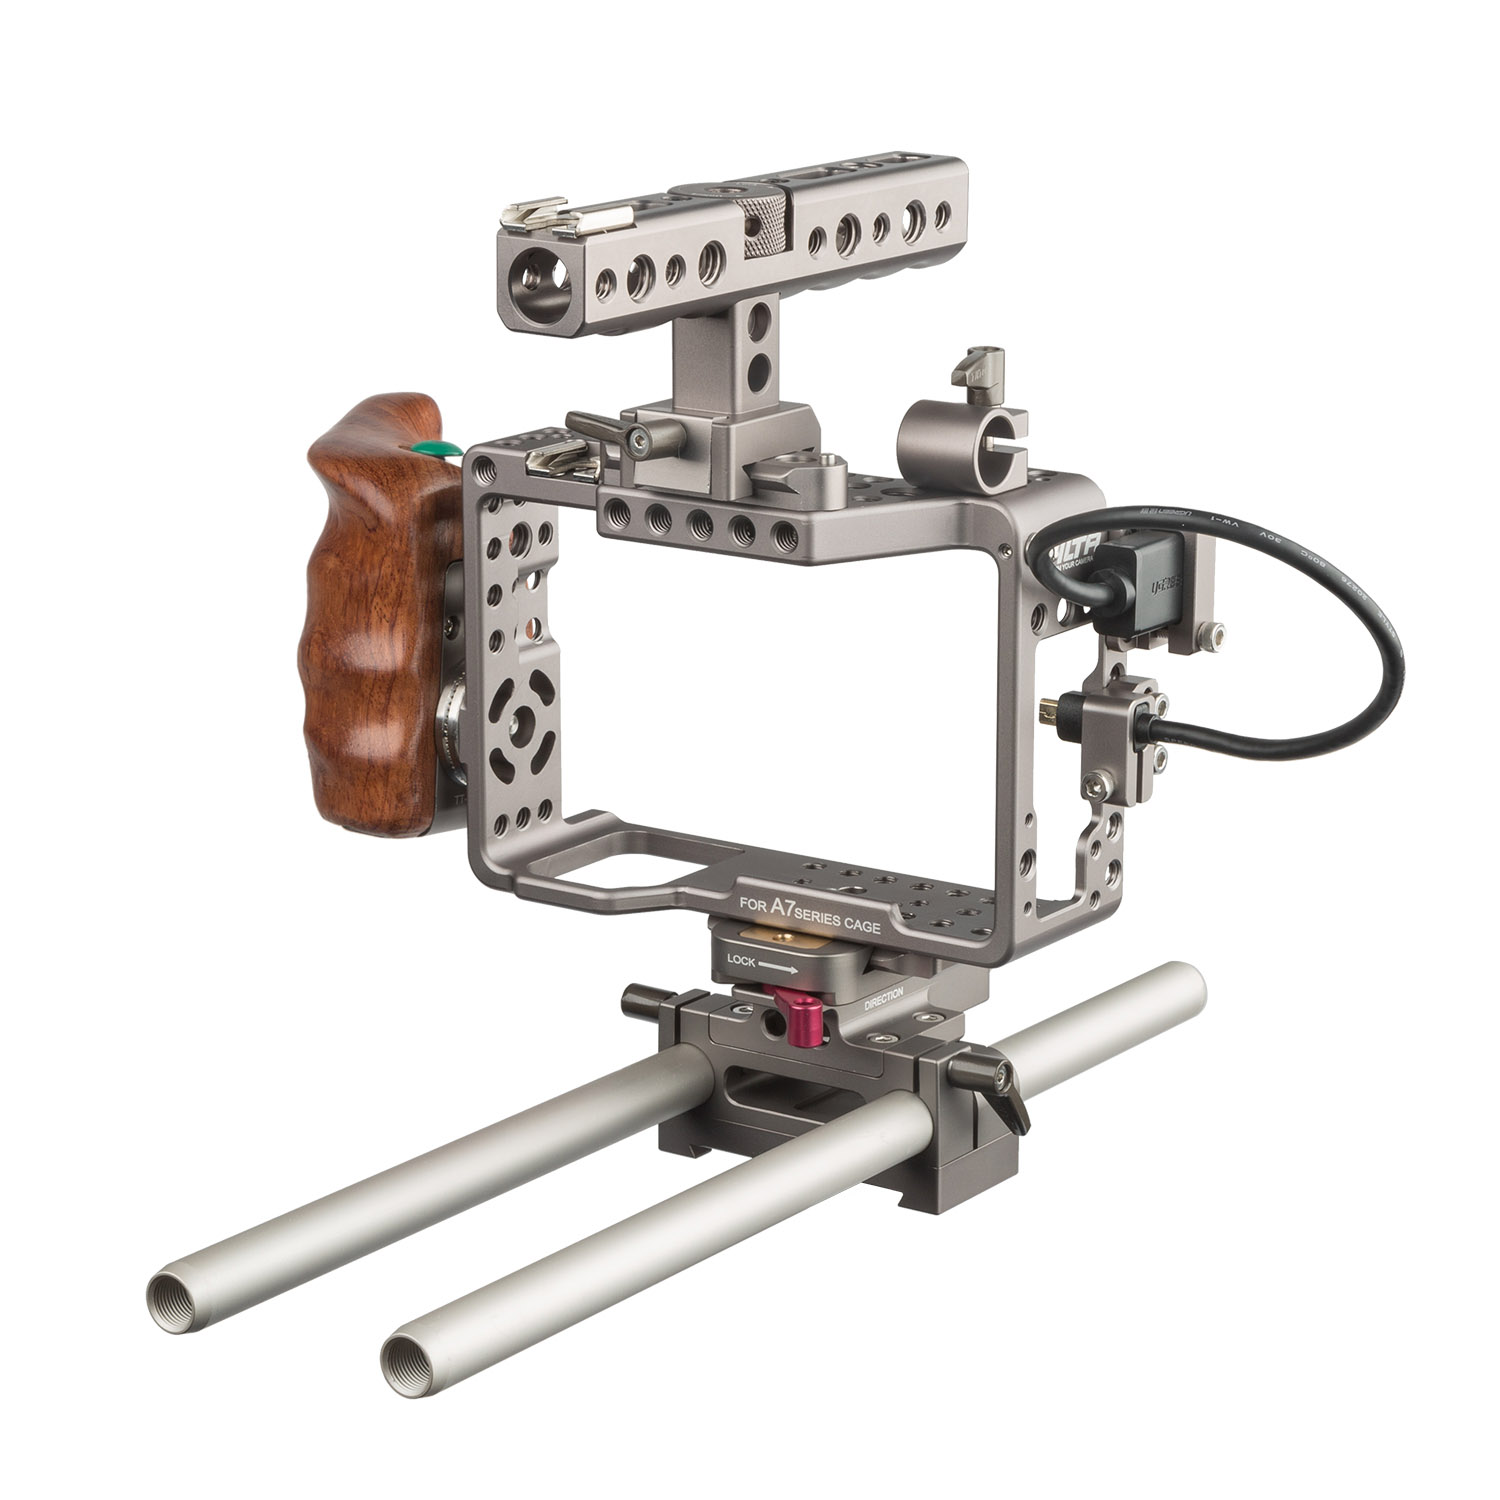 Sony Alpha Series Handheld Camera Cage Rig with Start/Stop Wooden Handle  Trigger for the a7R, a7RII, a7S, and a7SII (Tilta)